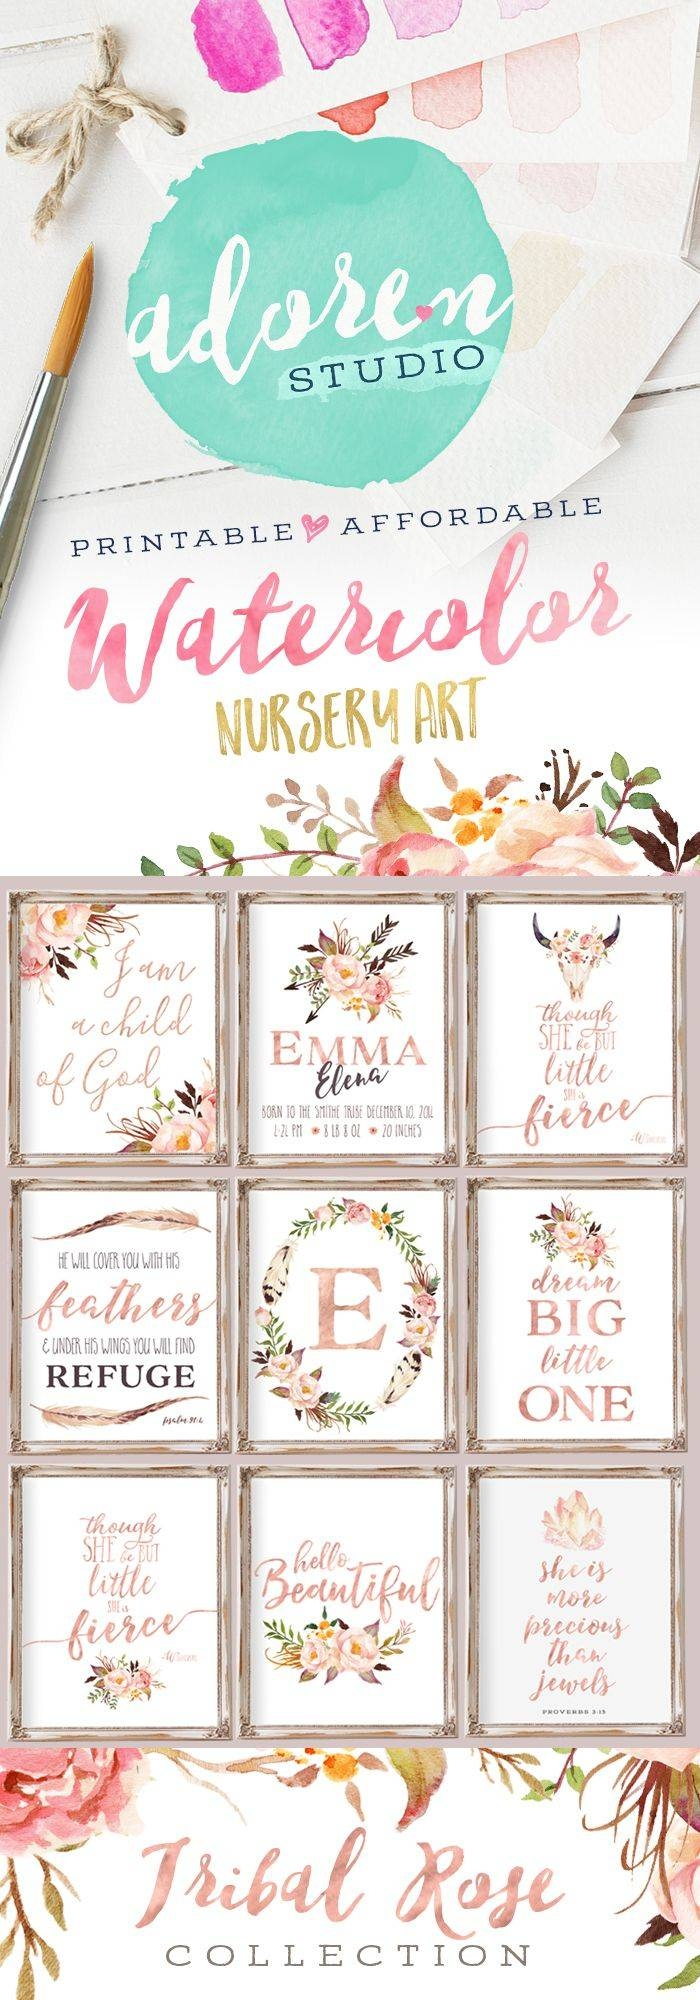 Best 25+ Nursery Wall Quotes Ideas On Pinterest | Baby Wall Quotes Pertaining To Most Recent Winnie The Pooh Nursery Quotes Wall Art (View 14 of 20)